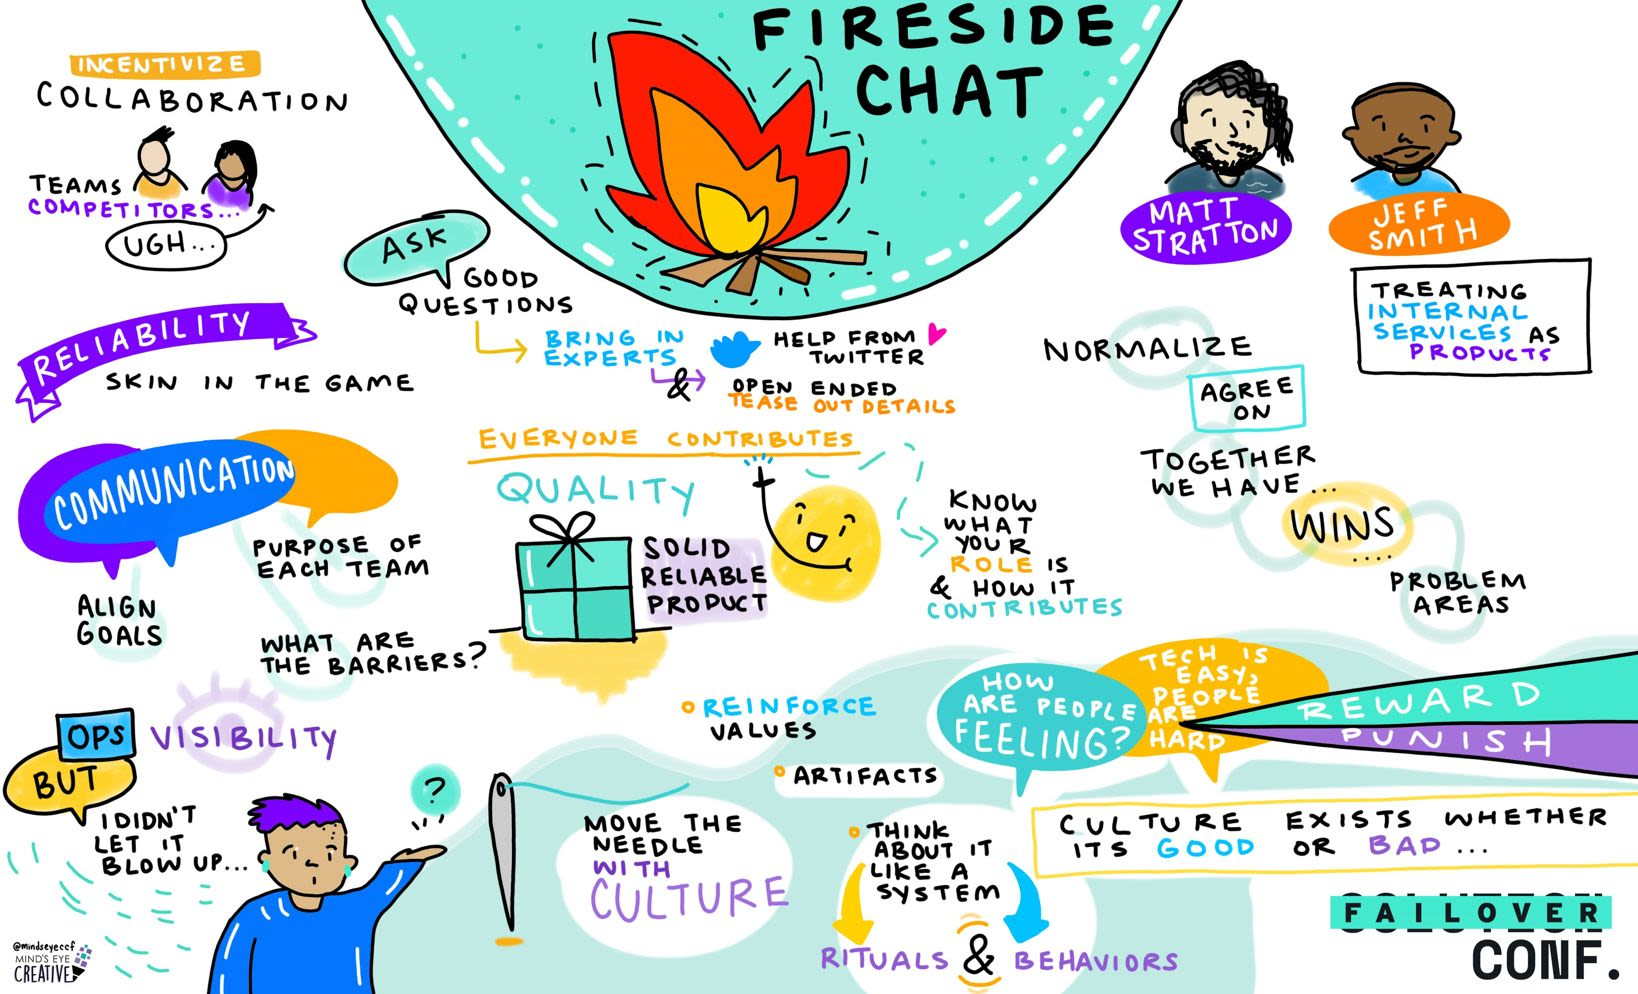 Fireside chat with Jeff Smith and Matt Stratton